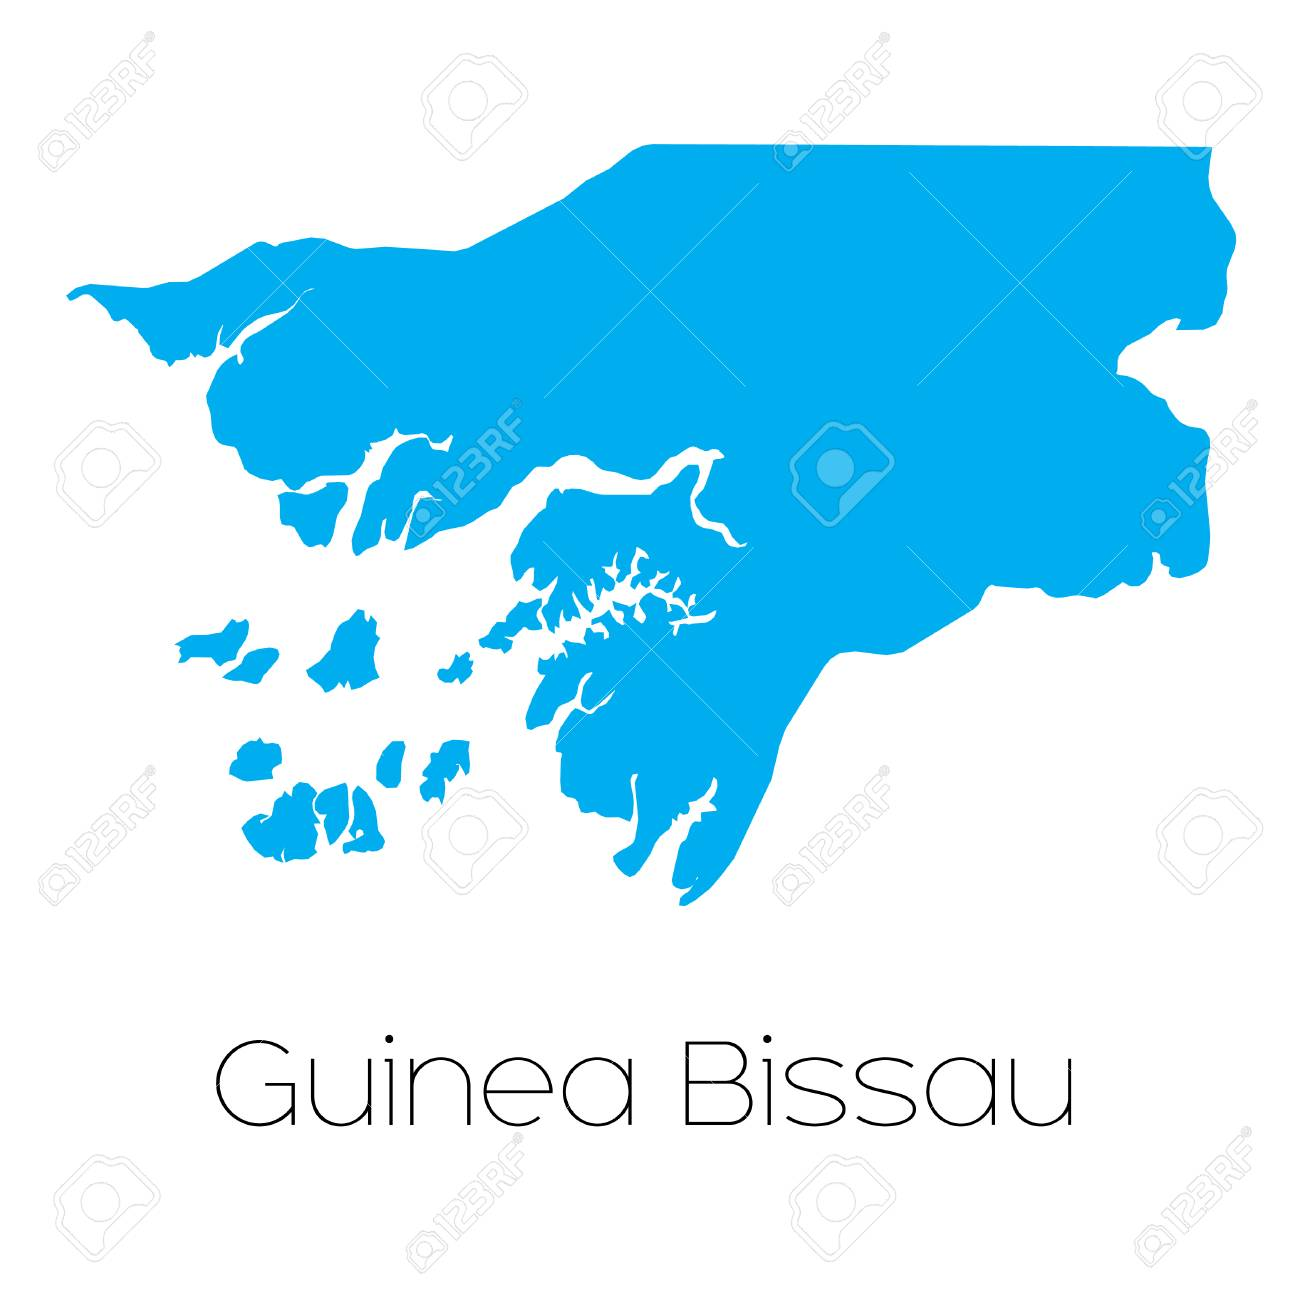 A Blue shape with name of the country of Guinea Bissau Stock Photo - 44842362